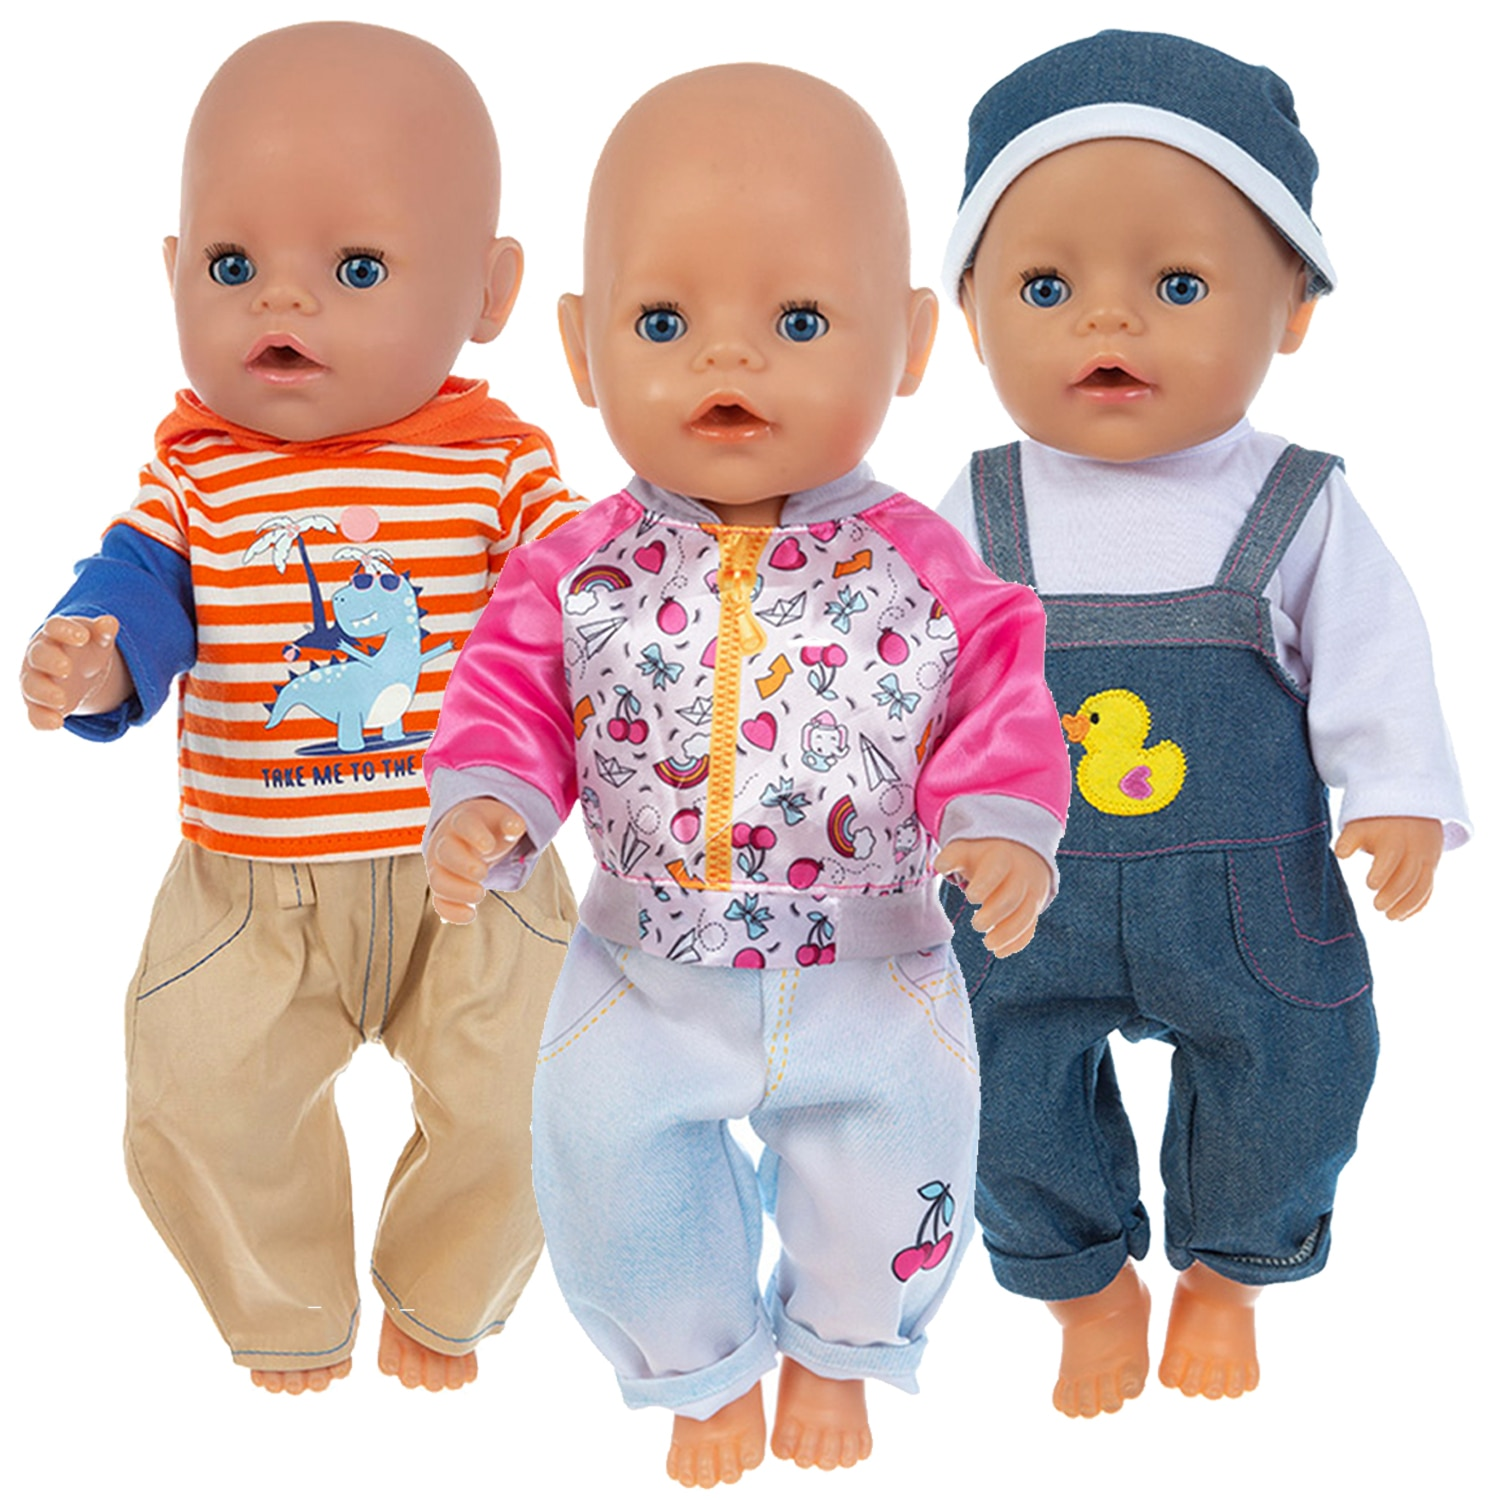 2020 Hot Sale Baby New Born Fit 17 inch 43cm Doll Clothes Accessories Cherry Duck Hat Suit Clothes